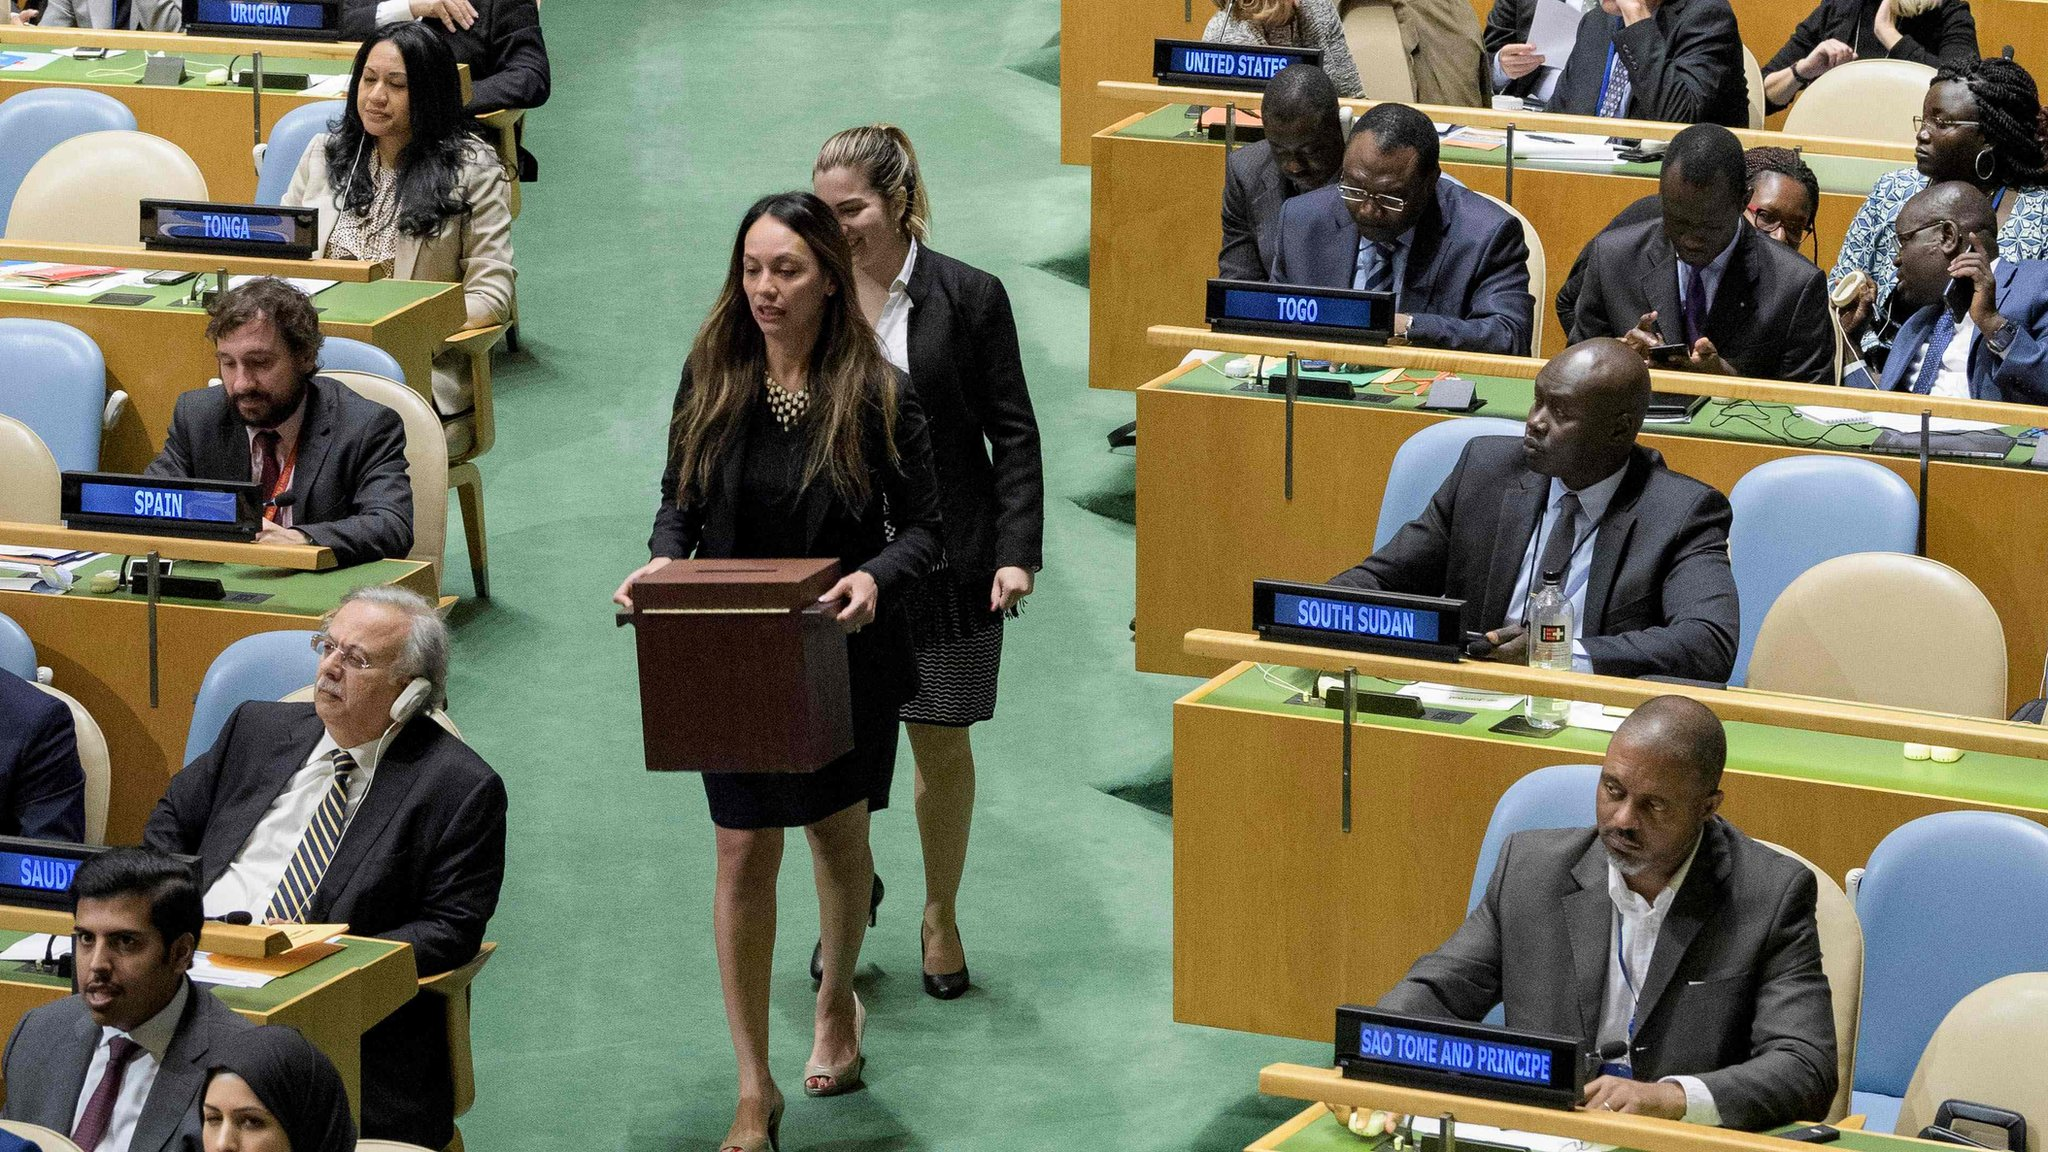 UN criticised over new human rights council members